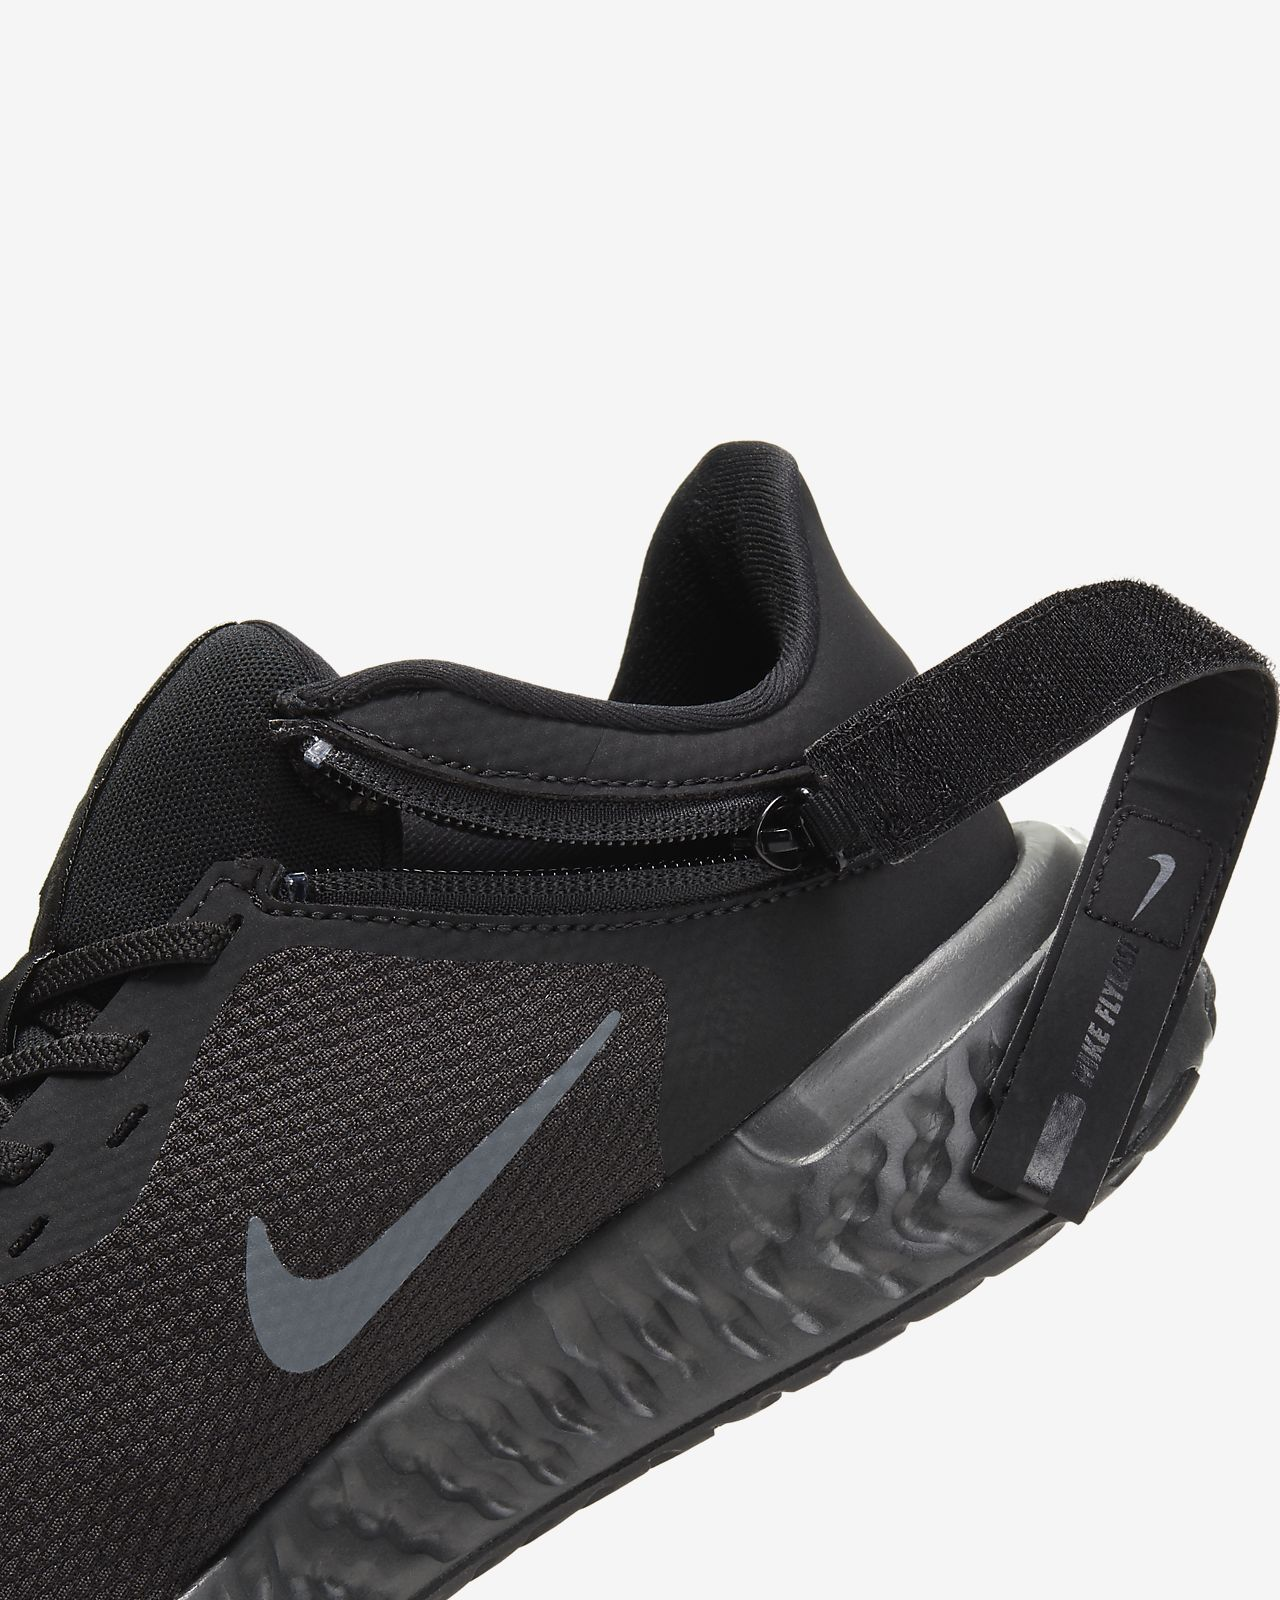 Men's sports shoes Nike Revolution 5